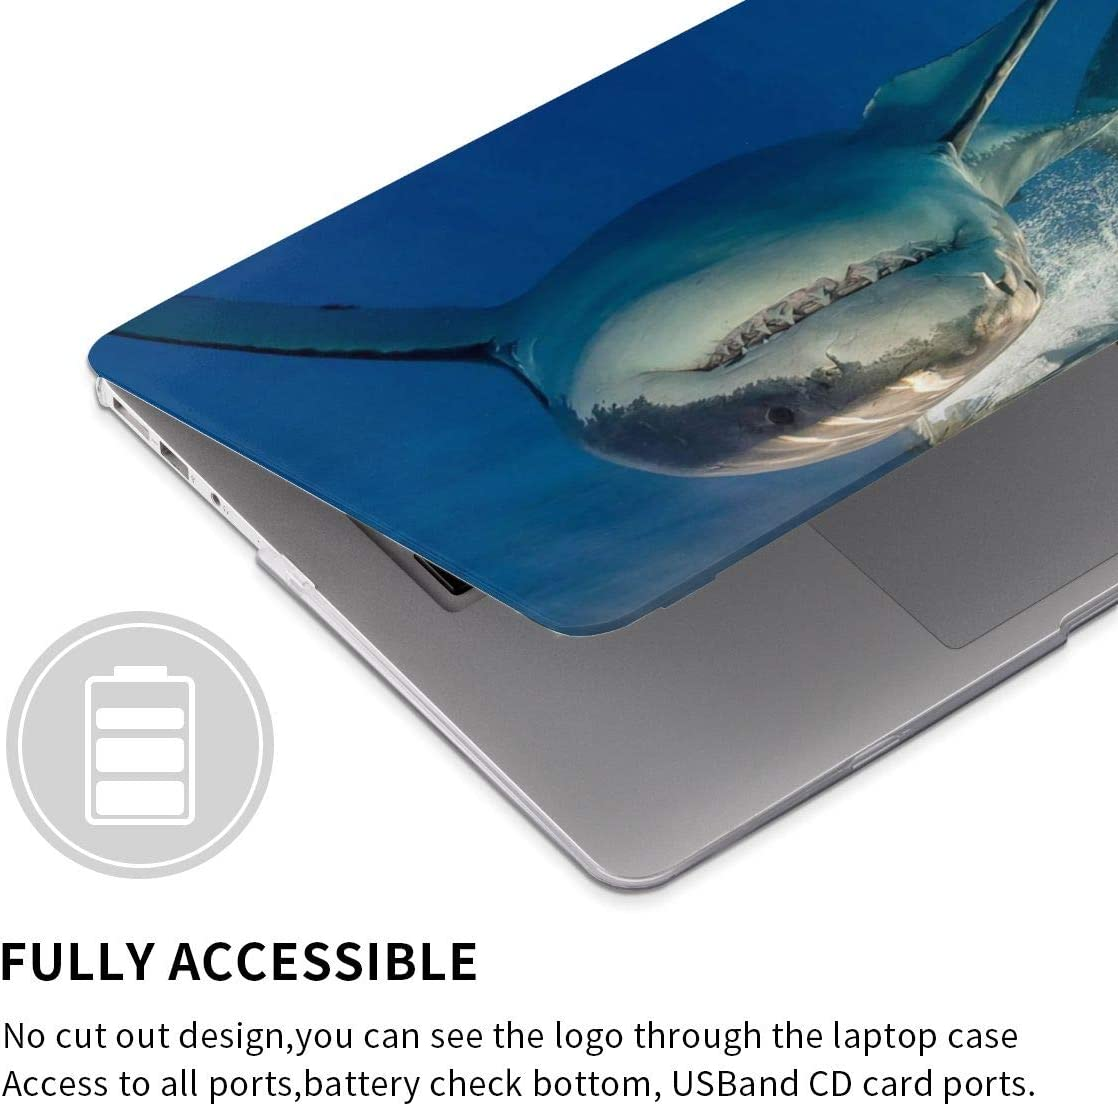 Big Shark Laptop Case Dust-Proof Laptop Case Cover Beauty Fully Protect Computer Plastic Case Hard Shell Cover Laptop Sleeve Case for air13